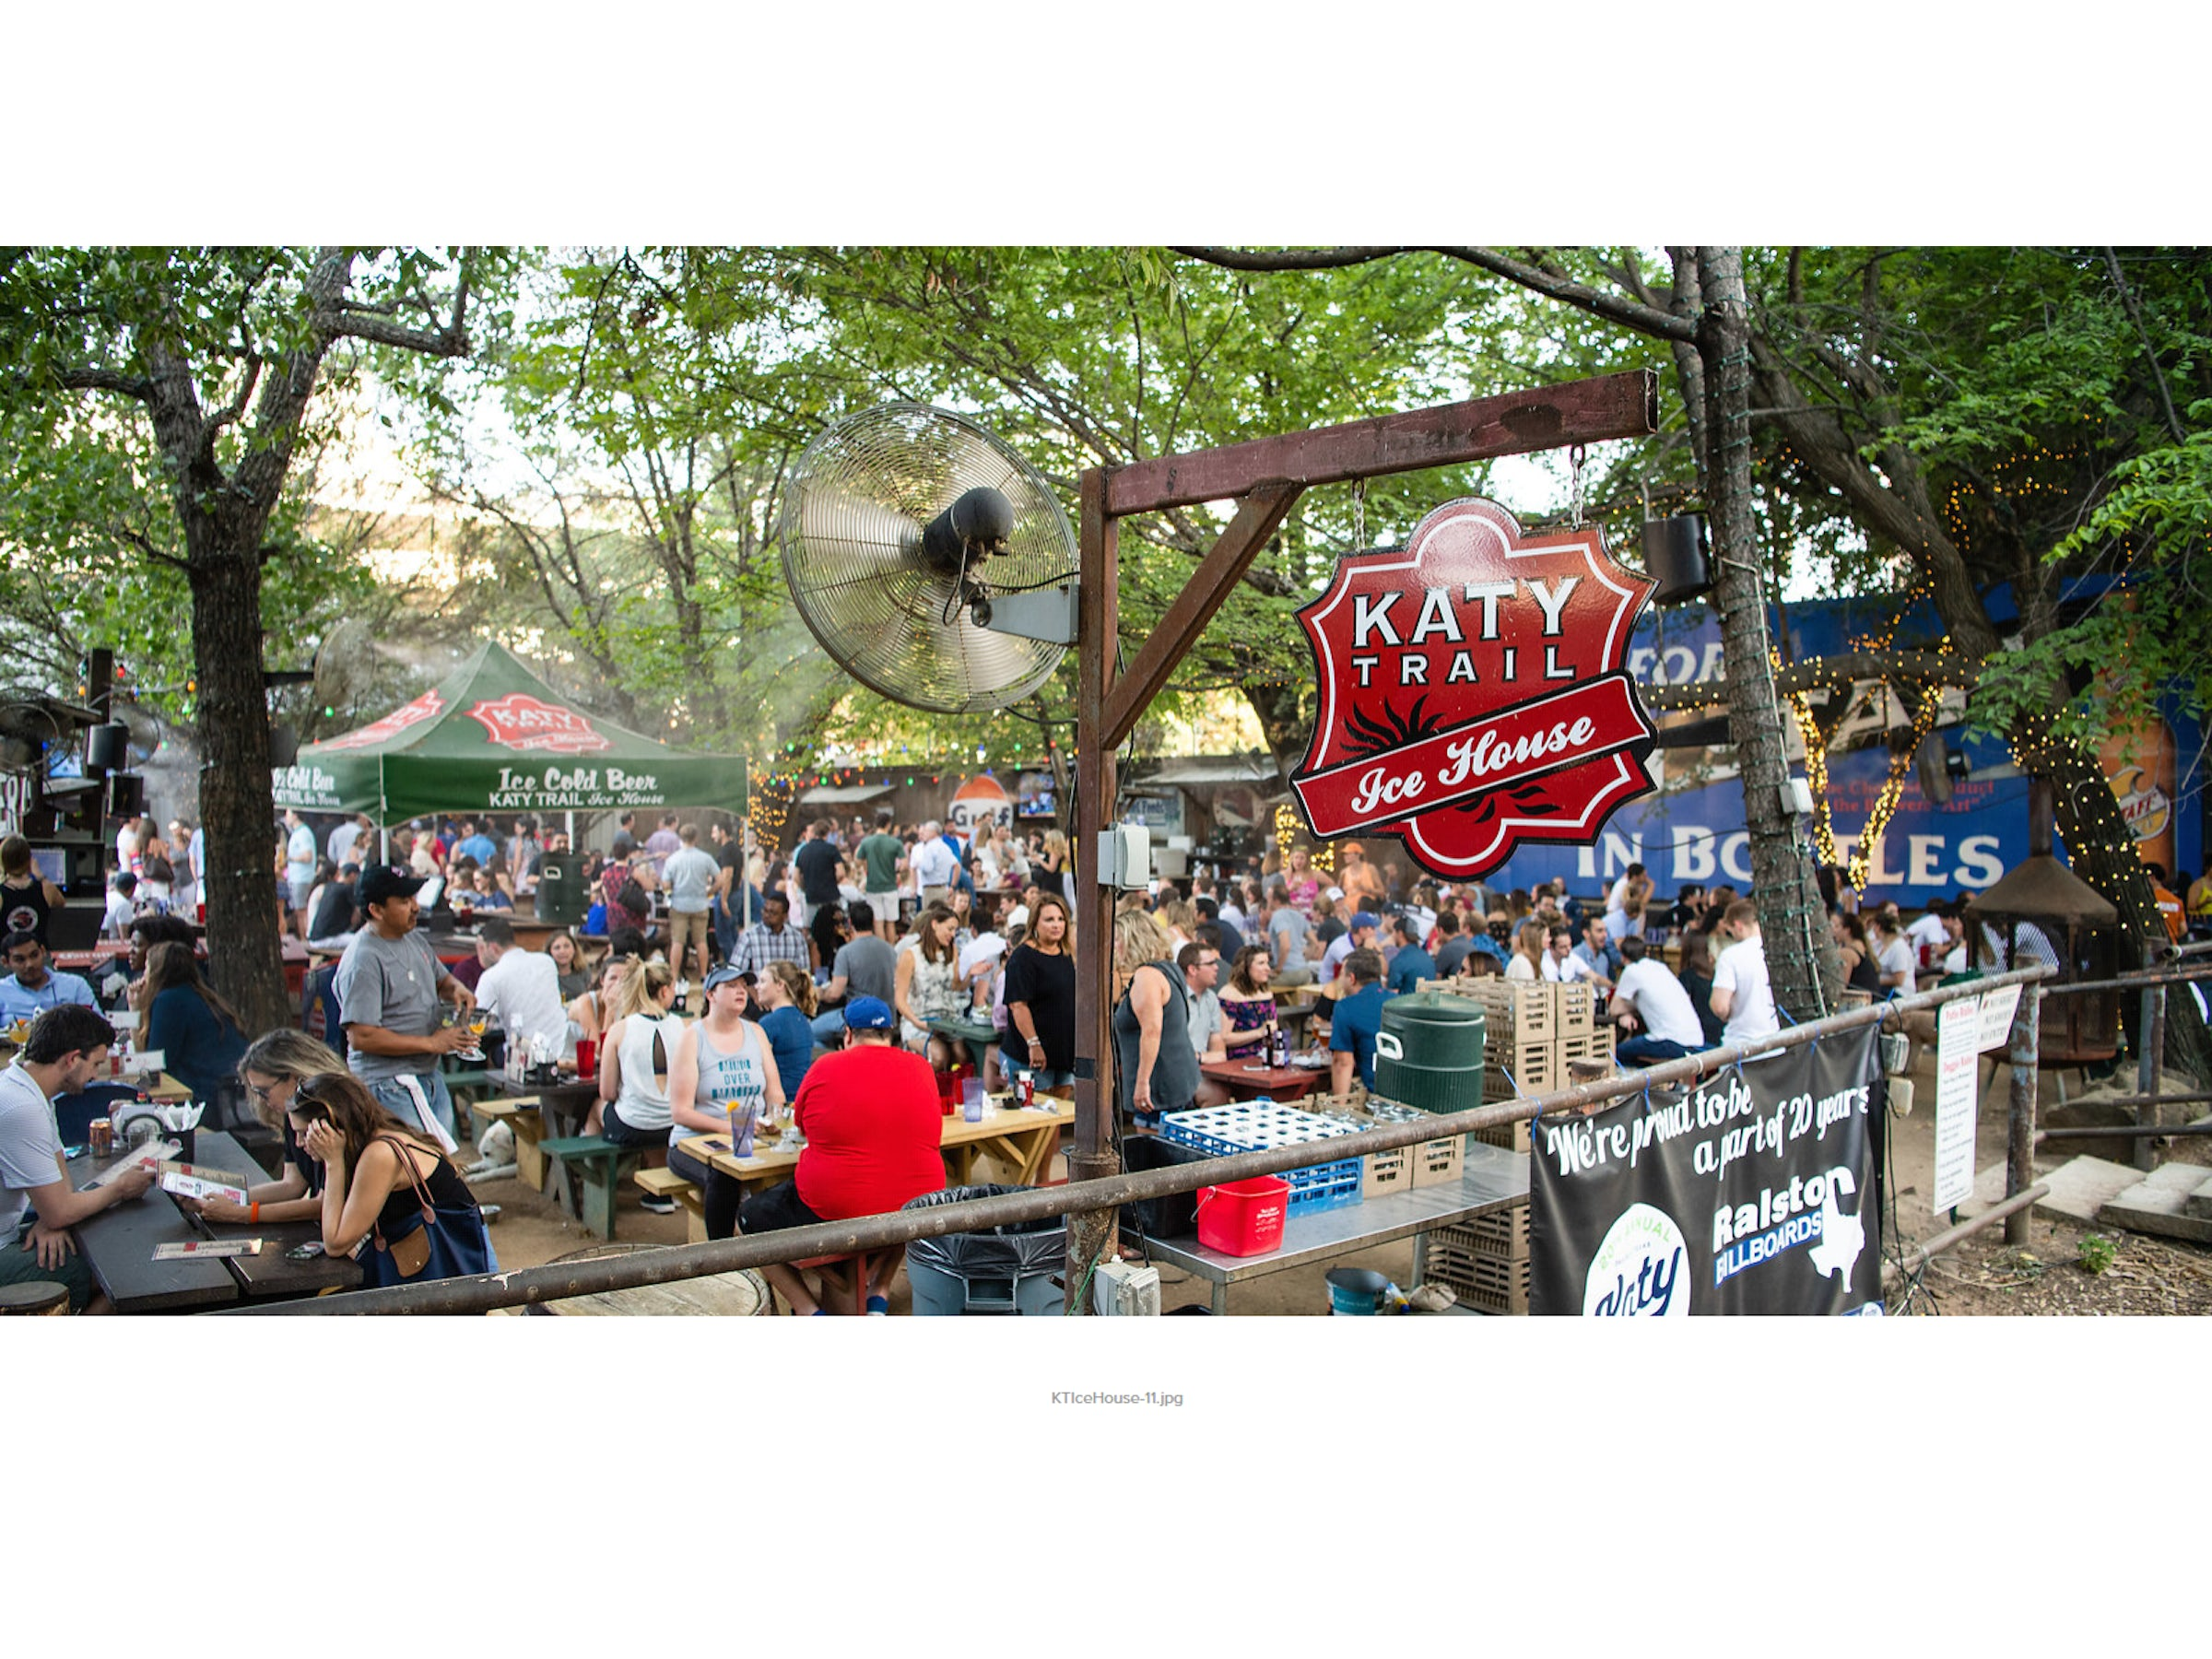 Katy Trail Ice House in Beyond Dallas